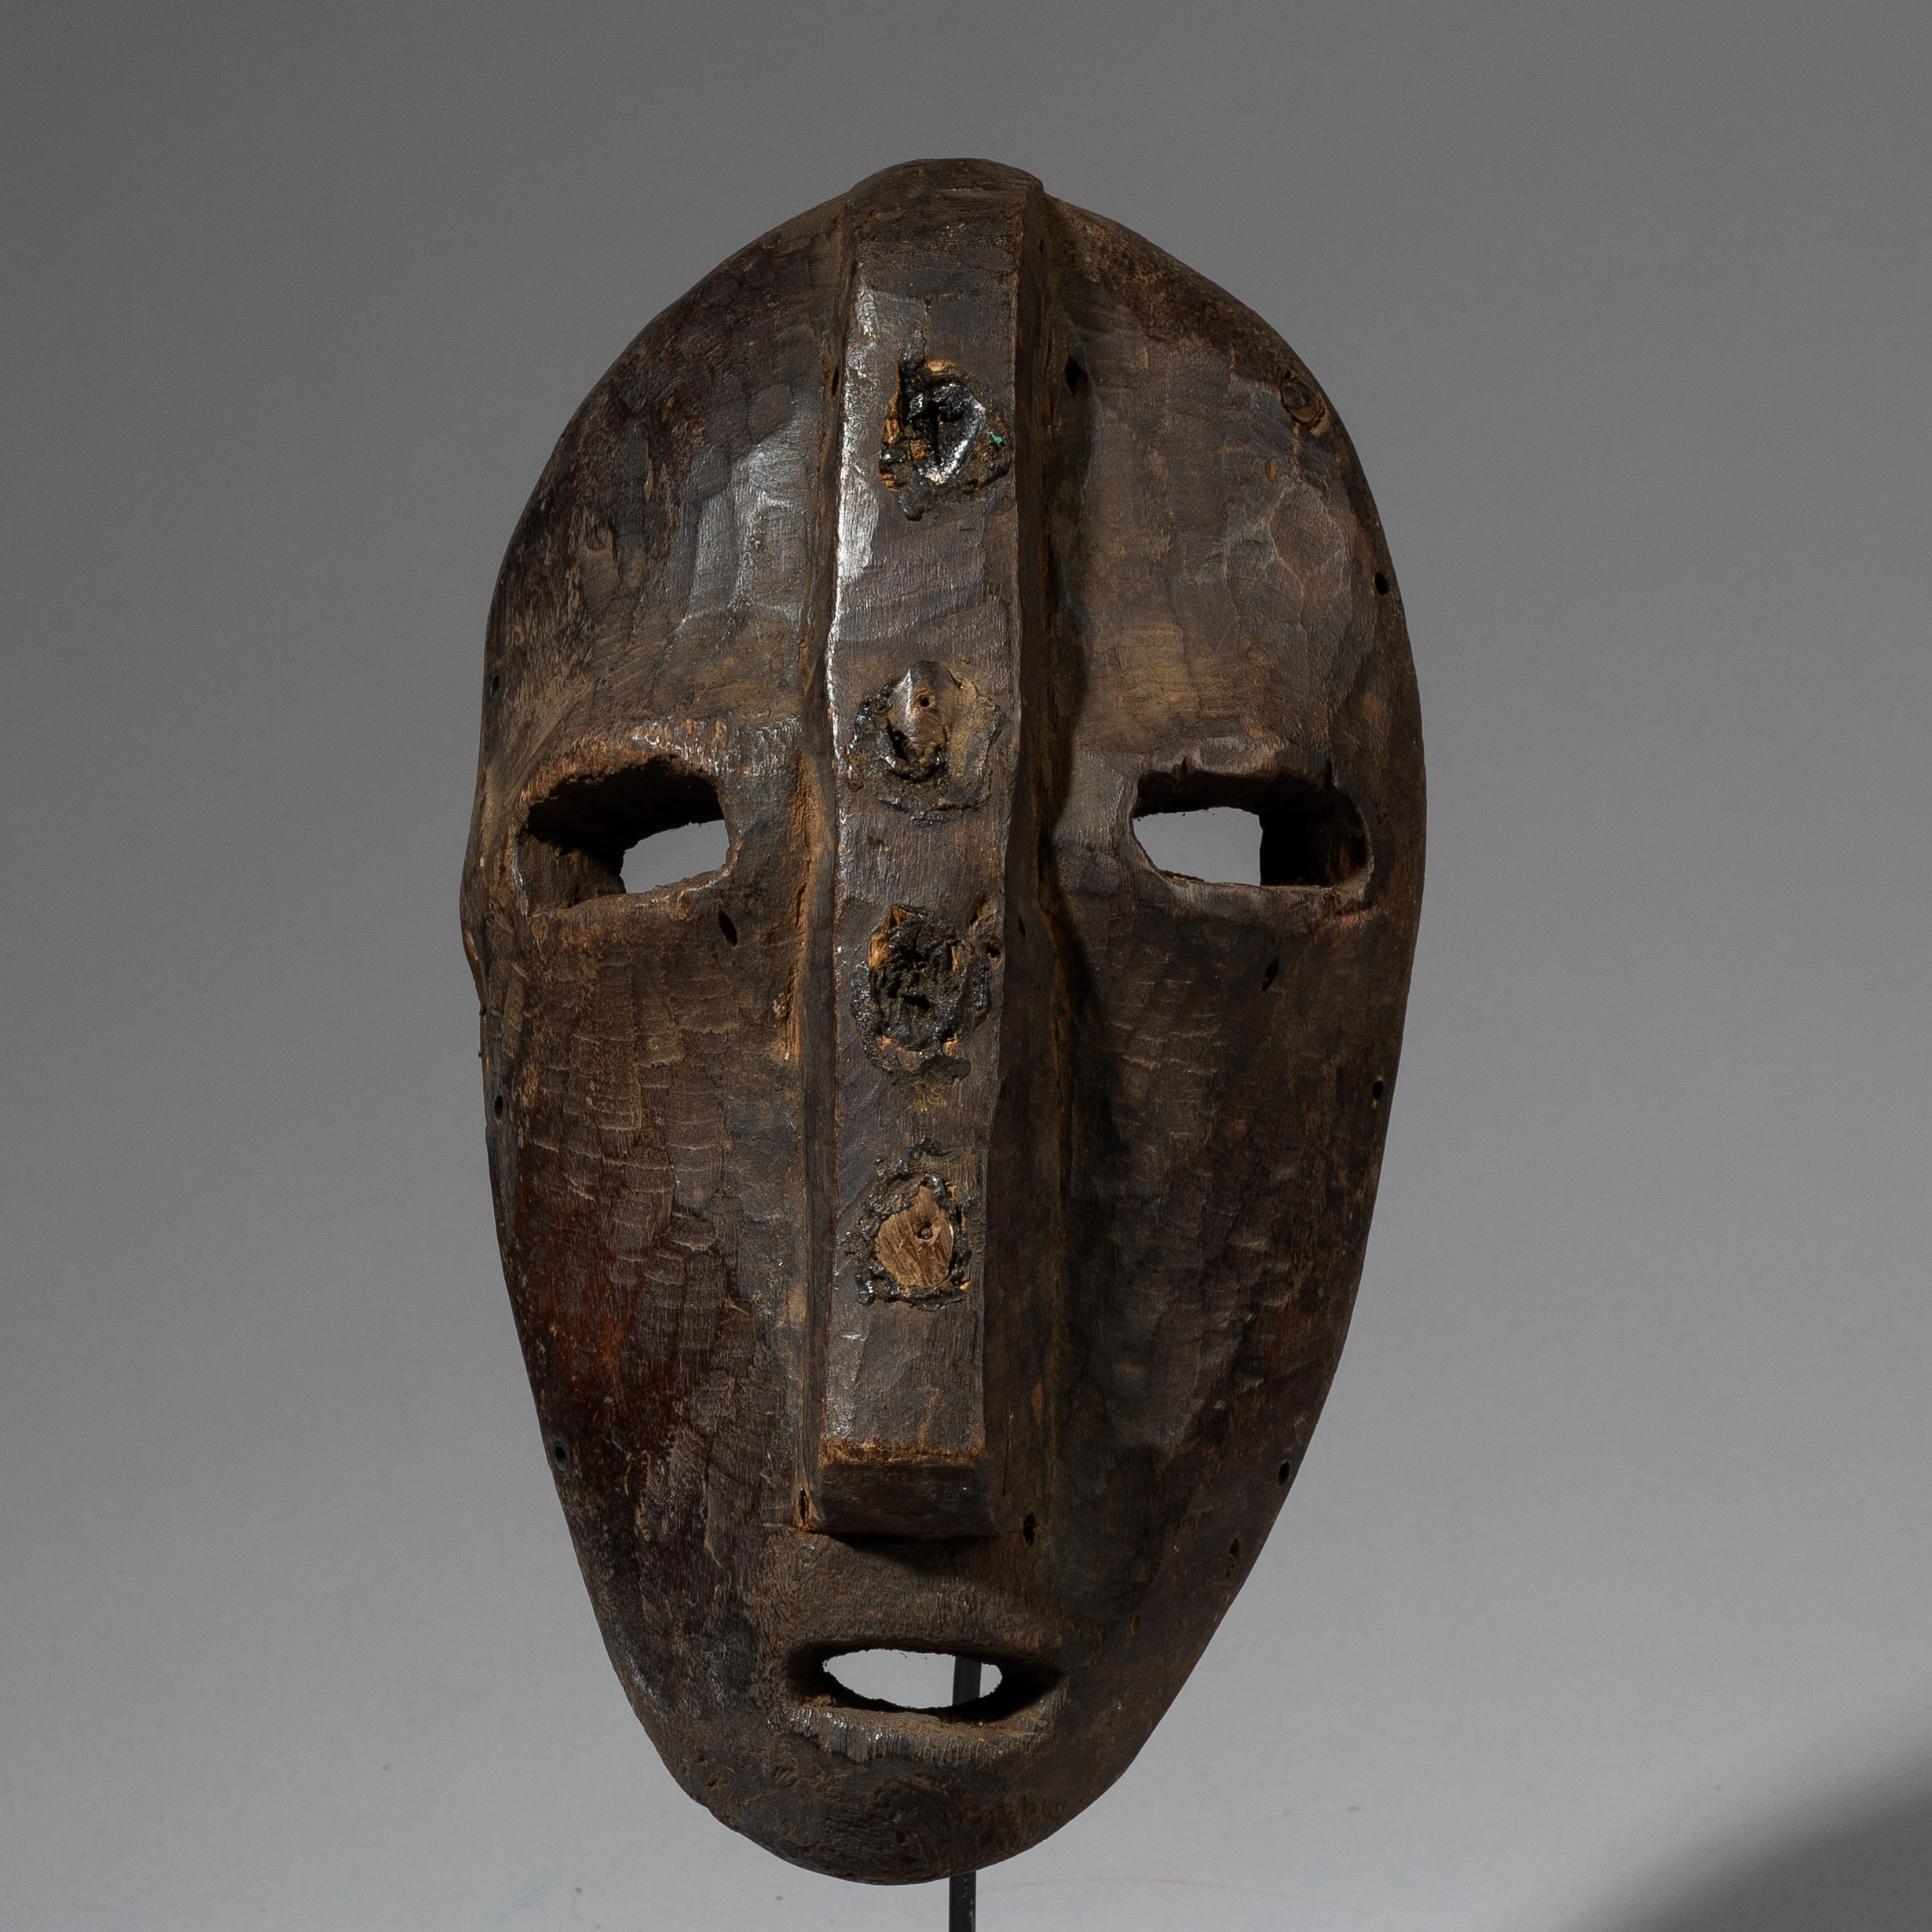 AN IMPOSING LEGA TRIBE MASK WITH EMBEDDED SHELLS FROM CONGO ( No 3168 )